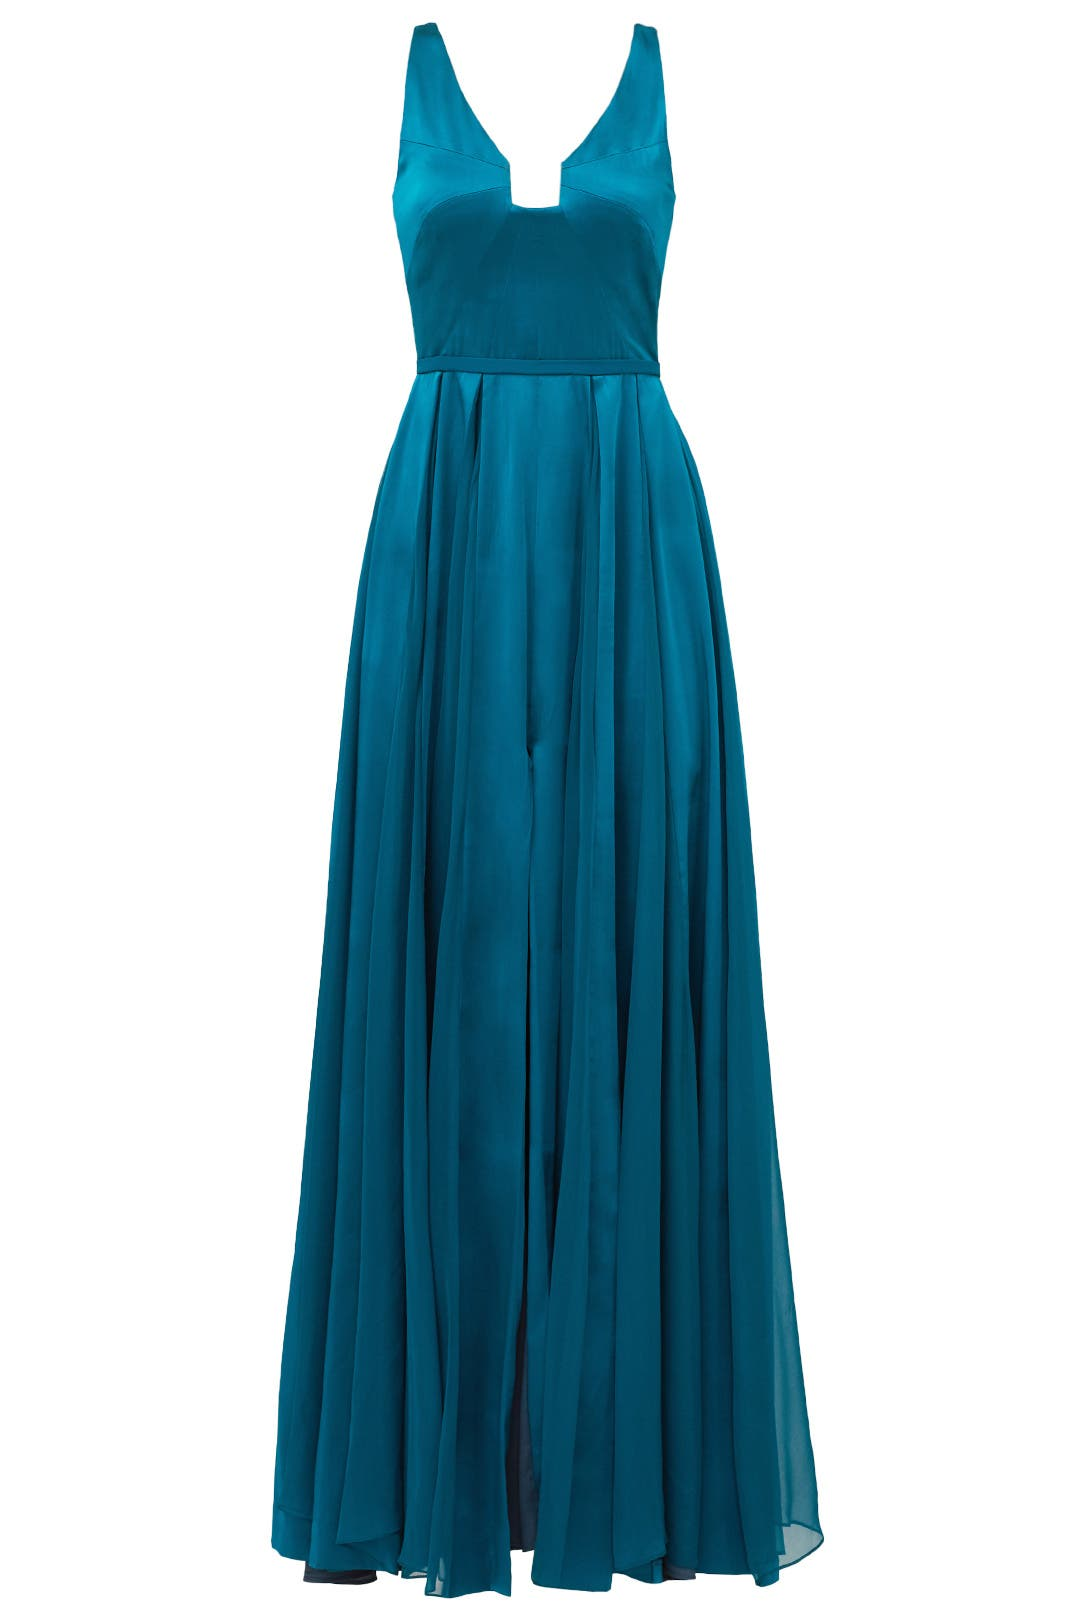 Teal Twirl Gown by Halston Heritage for $179 | Rent the Runway